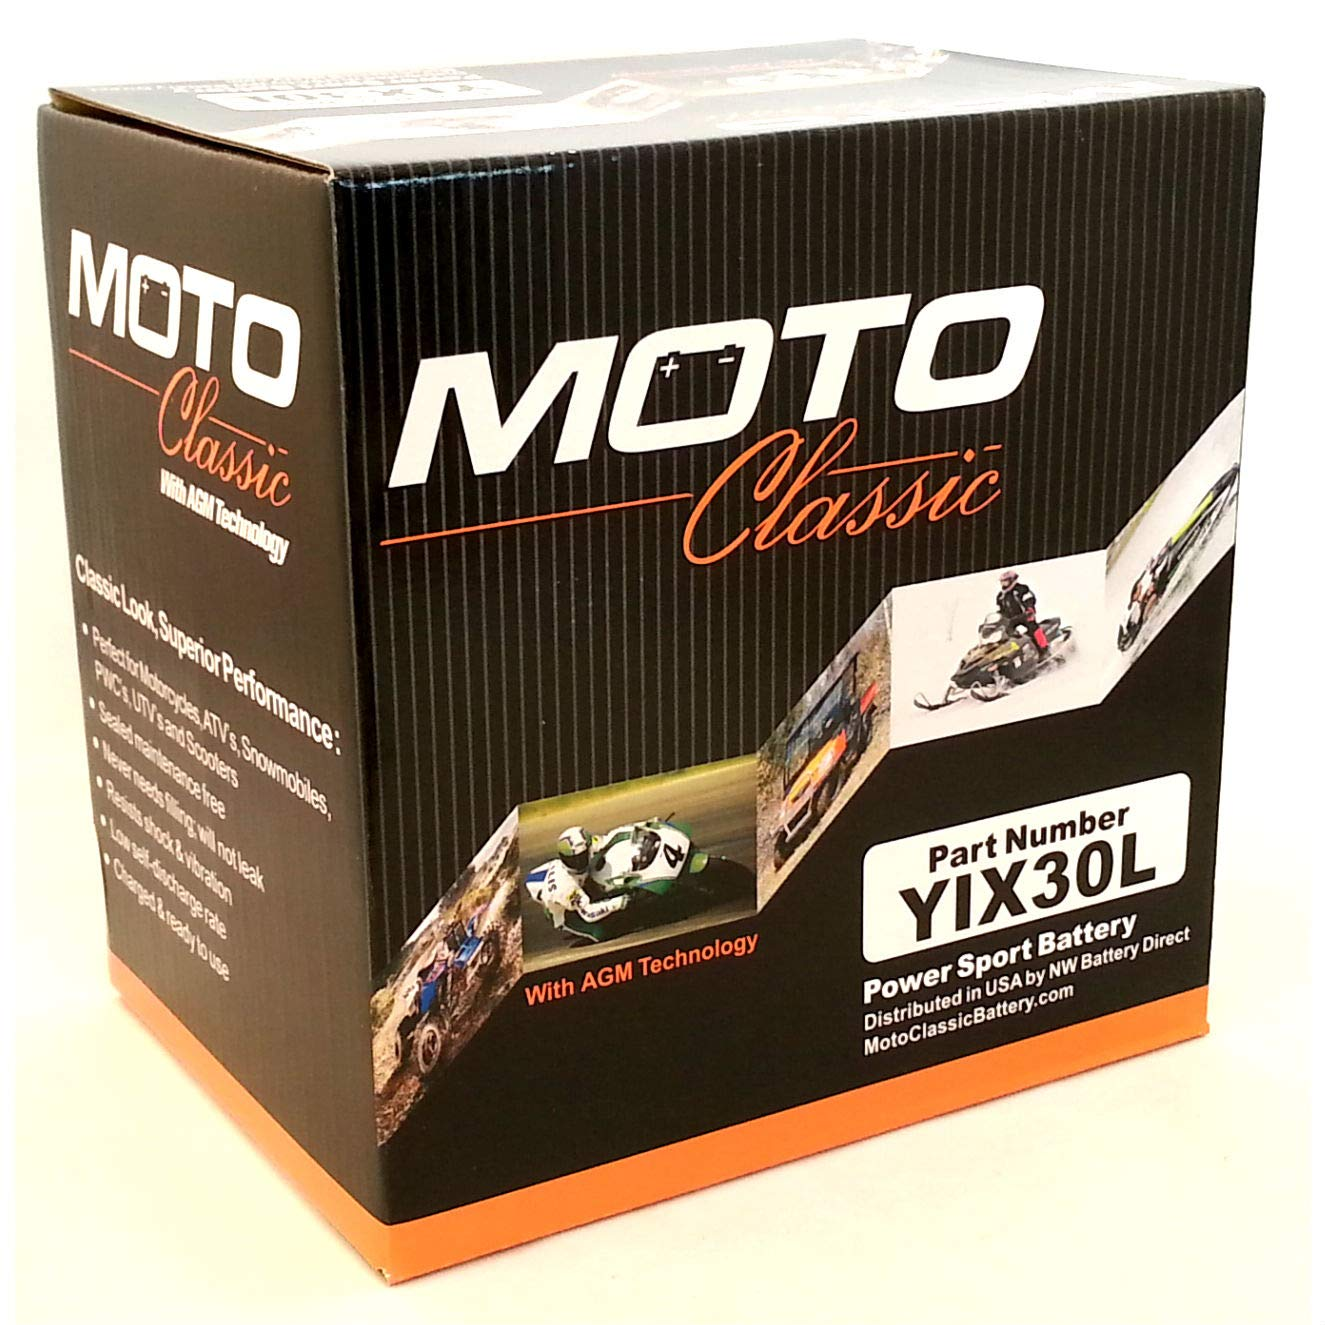 Moto Classic YIX30L 12V 34ah Sealed AGM 420CCA 30 Mo. Warranty ATV/Motorcycle Battery by Moto Classic (Image #1)